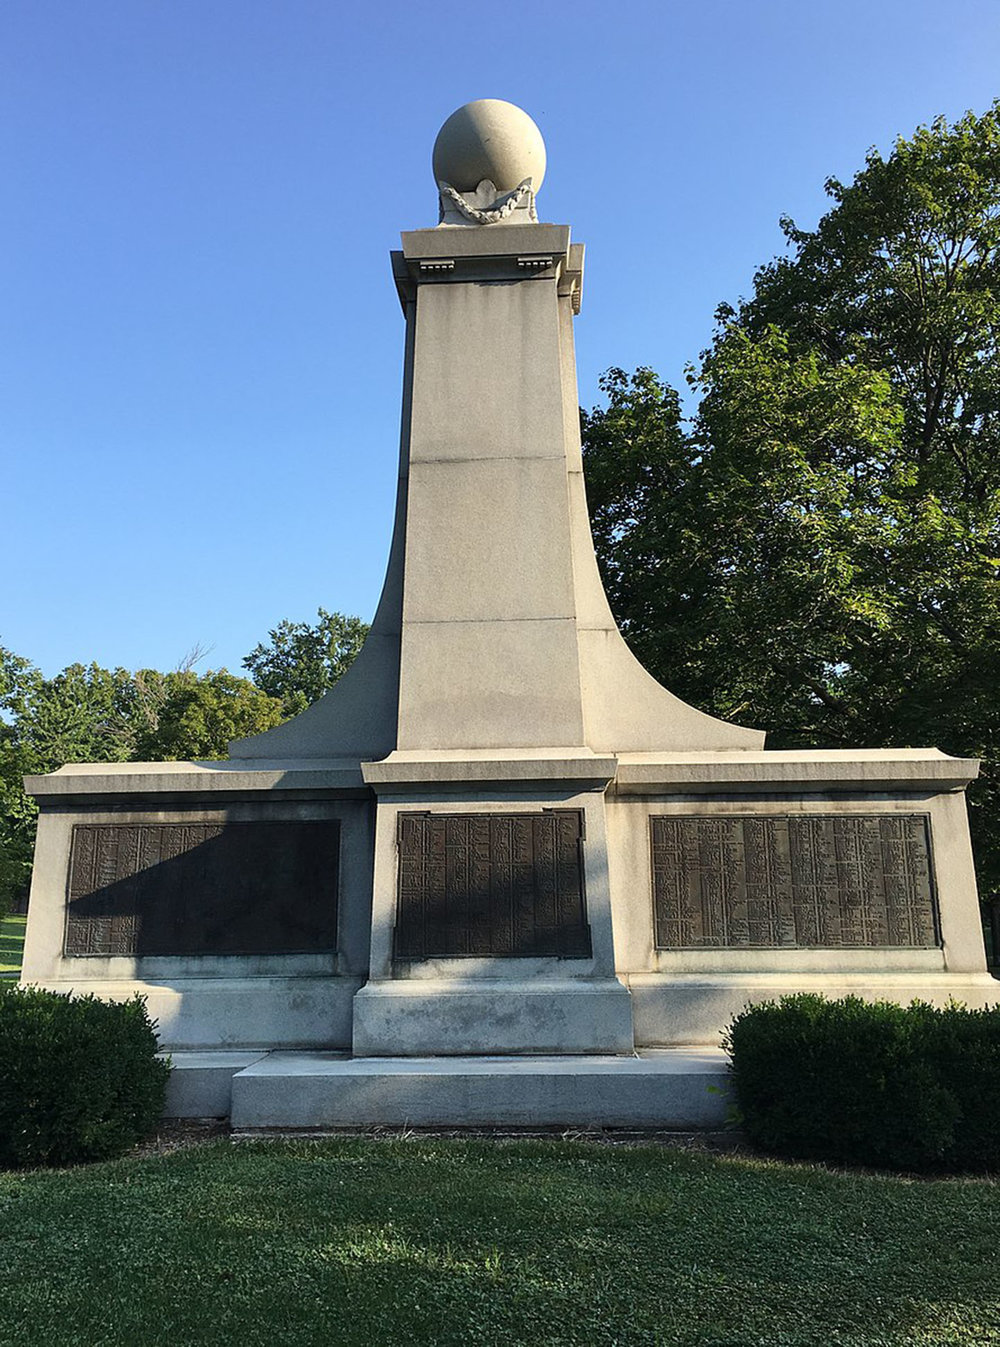 - After a call for removalof the Garfield Park's memorial, the Indianapolis Parks and Recreation department is exploring options to remove a monument memorializing the deaths of Confederate prisoners of war.